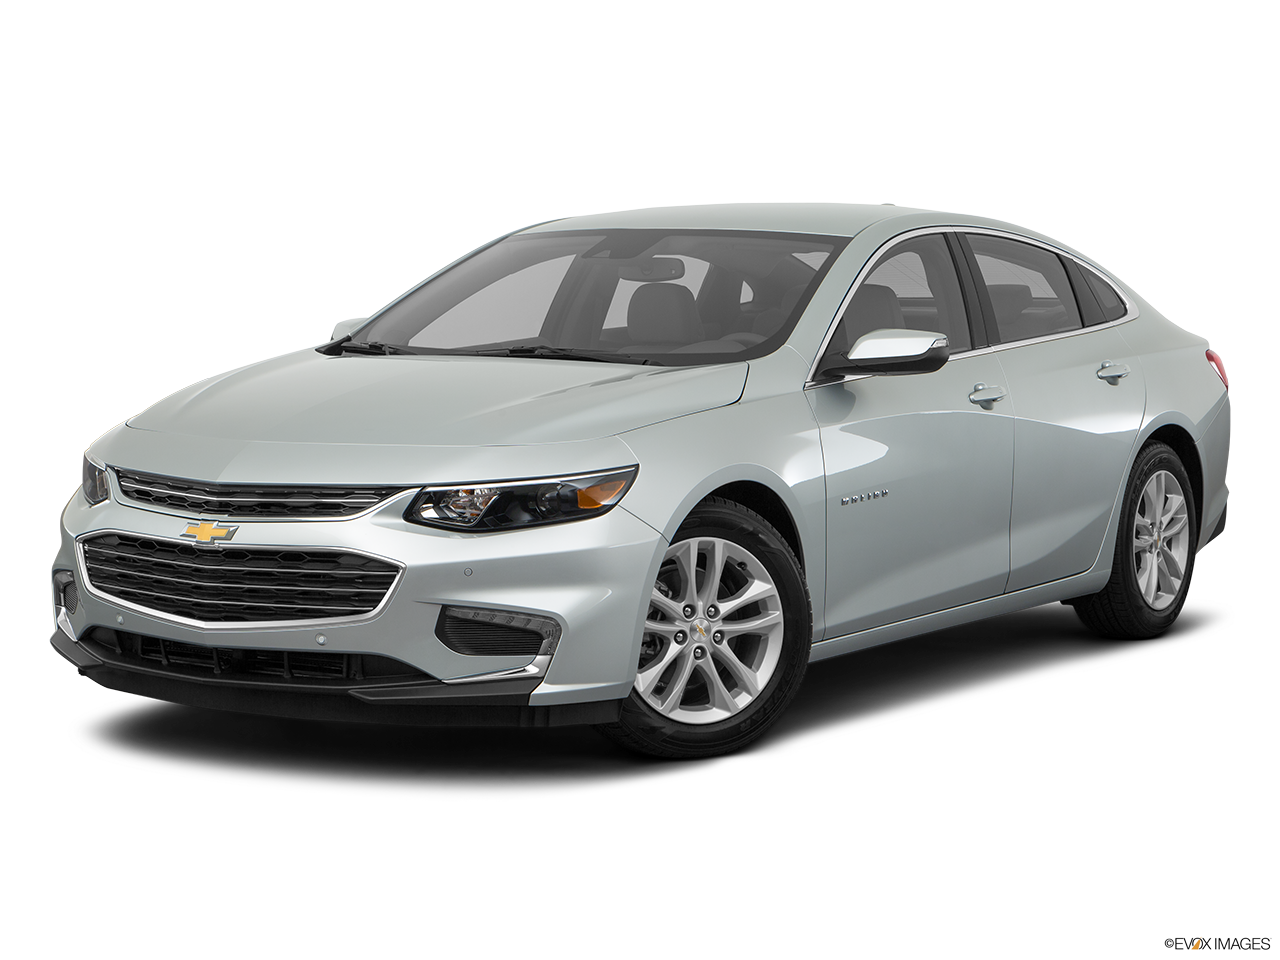 Test Drive A 2017 Chevrolet Malibu at Casey Chevrolet in Newport News